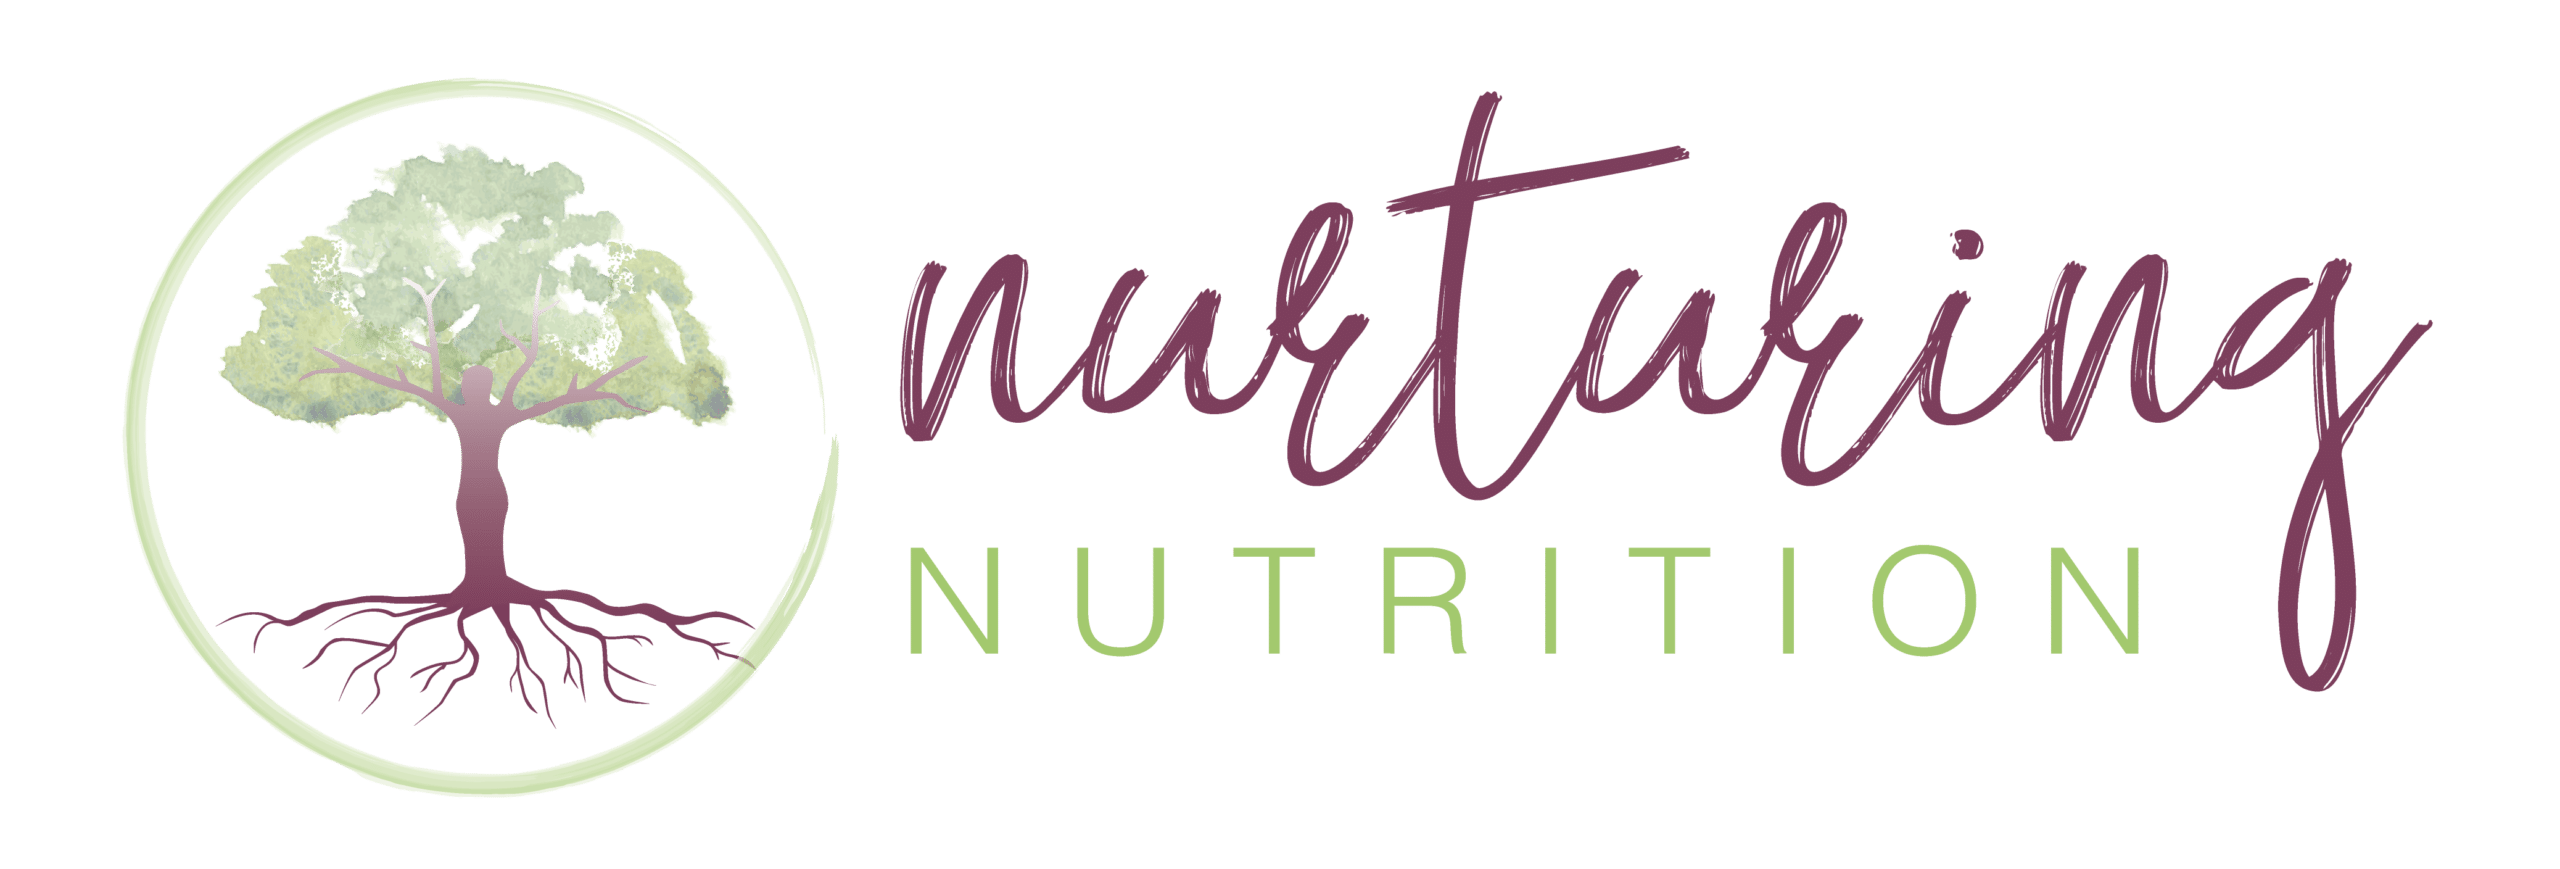 Nurturing Nutrition by Stephanie O'Donnell | Registered Dietitian Nutritionist serving Rhode Island, Connecticut, & Massachusetts